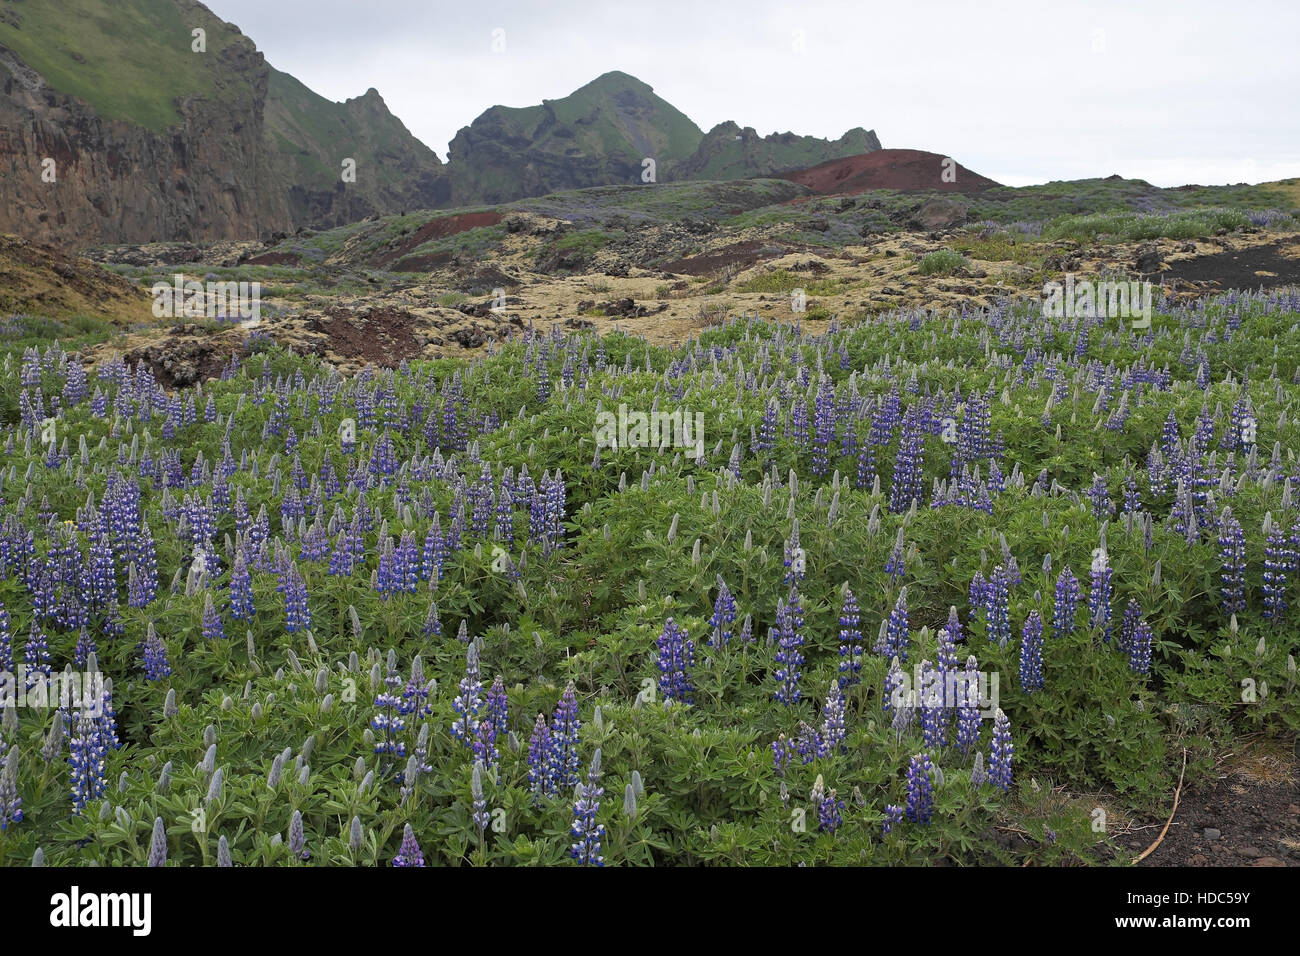 Wild lupins (Lupinus nootkatensis) growing on the flanks of Eldfell, which erupted in 1973, Heimaey, Iceland. - Stock Image